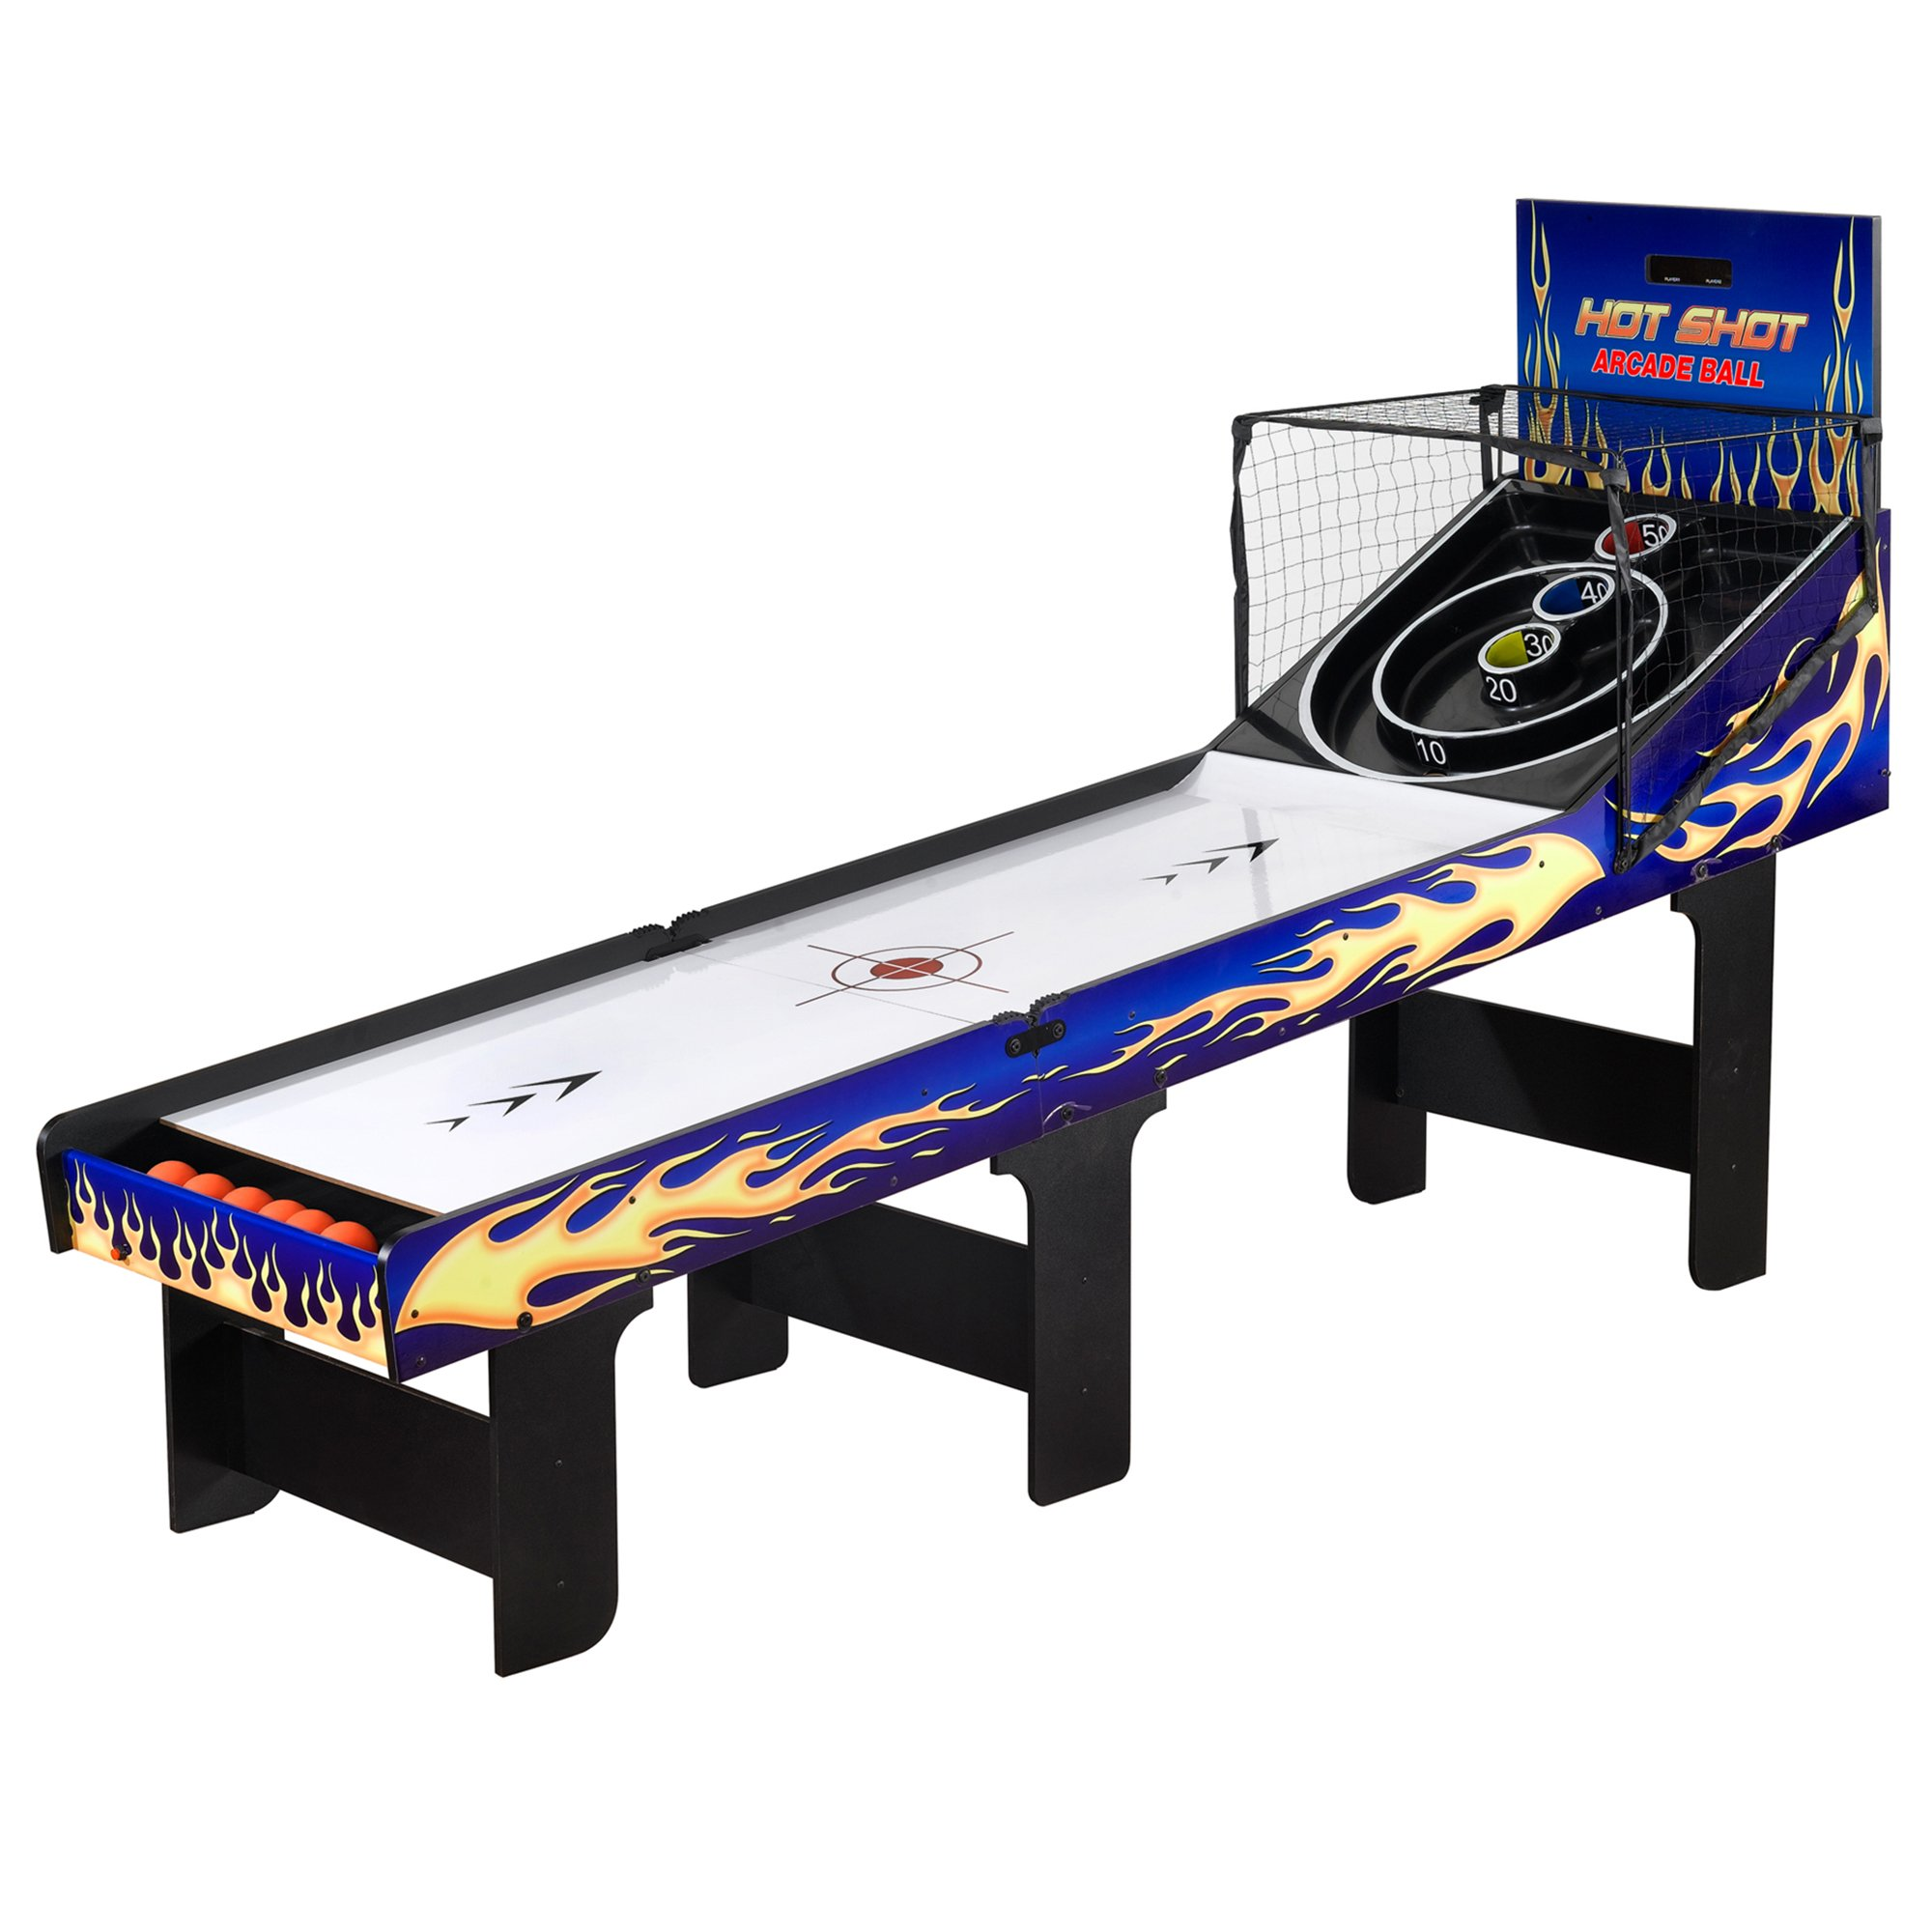 Hot Shot 8-ft Arcade Ball Table by Hathaway